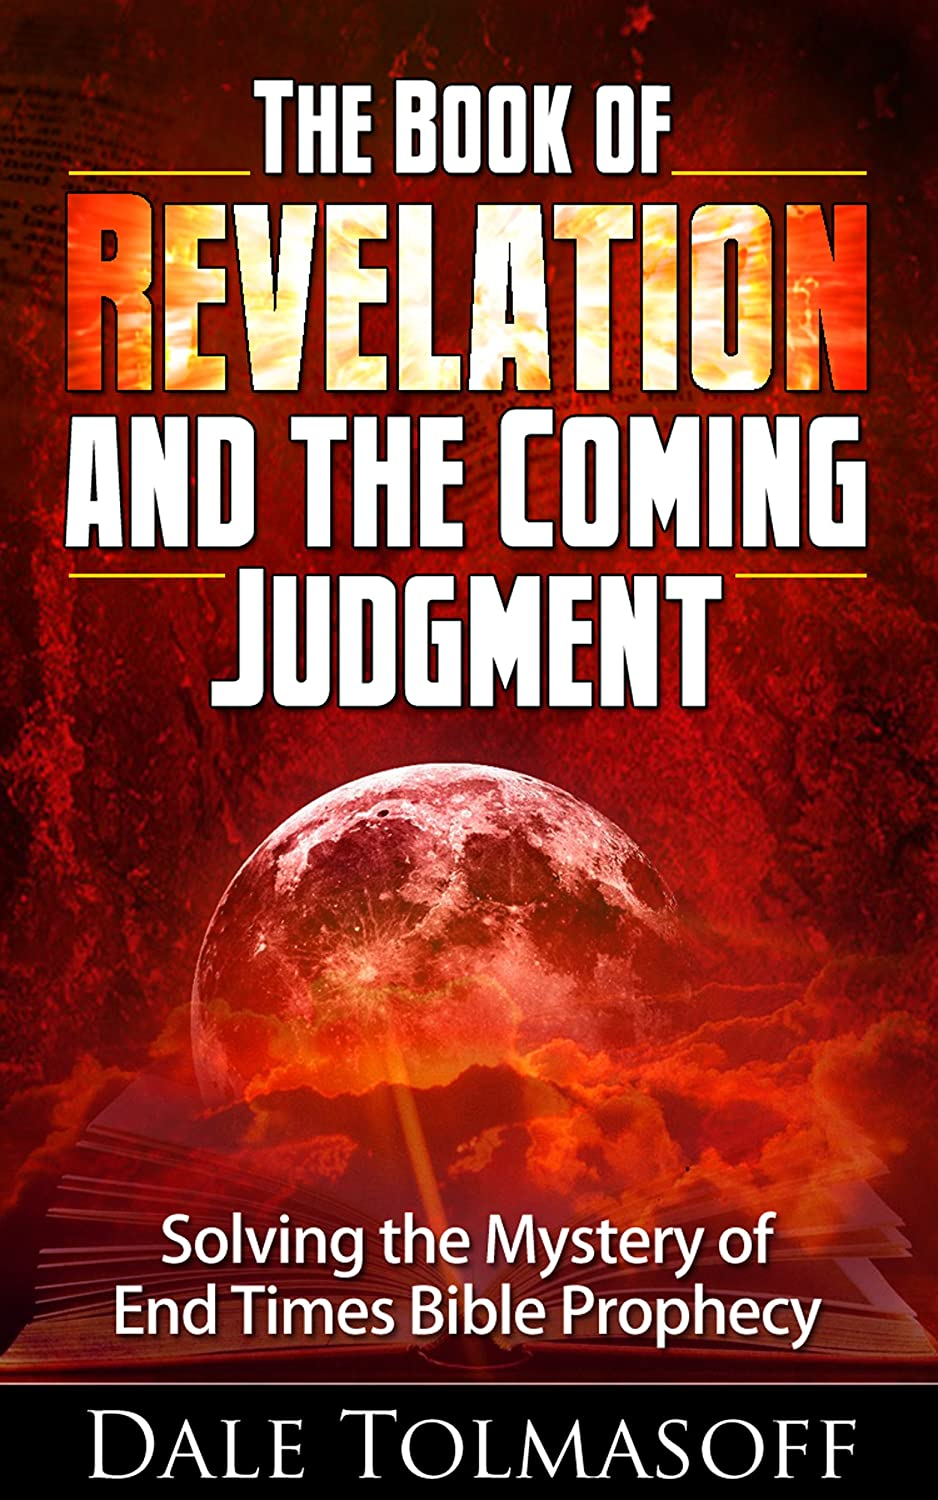 Book review: The Book of Revelation and the Coming Judgment